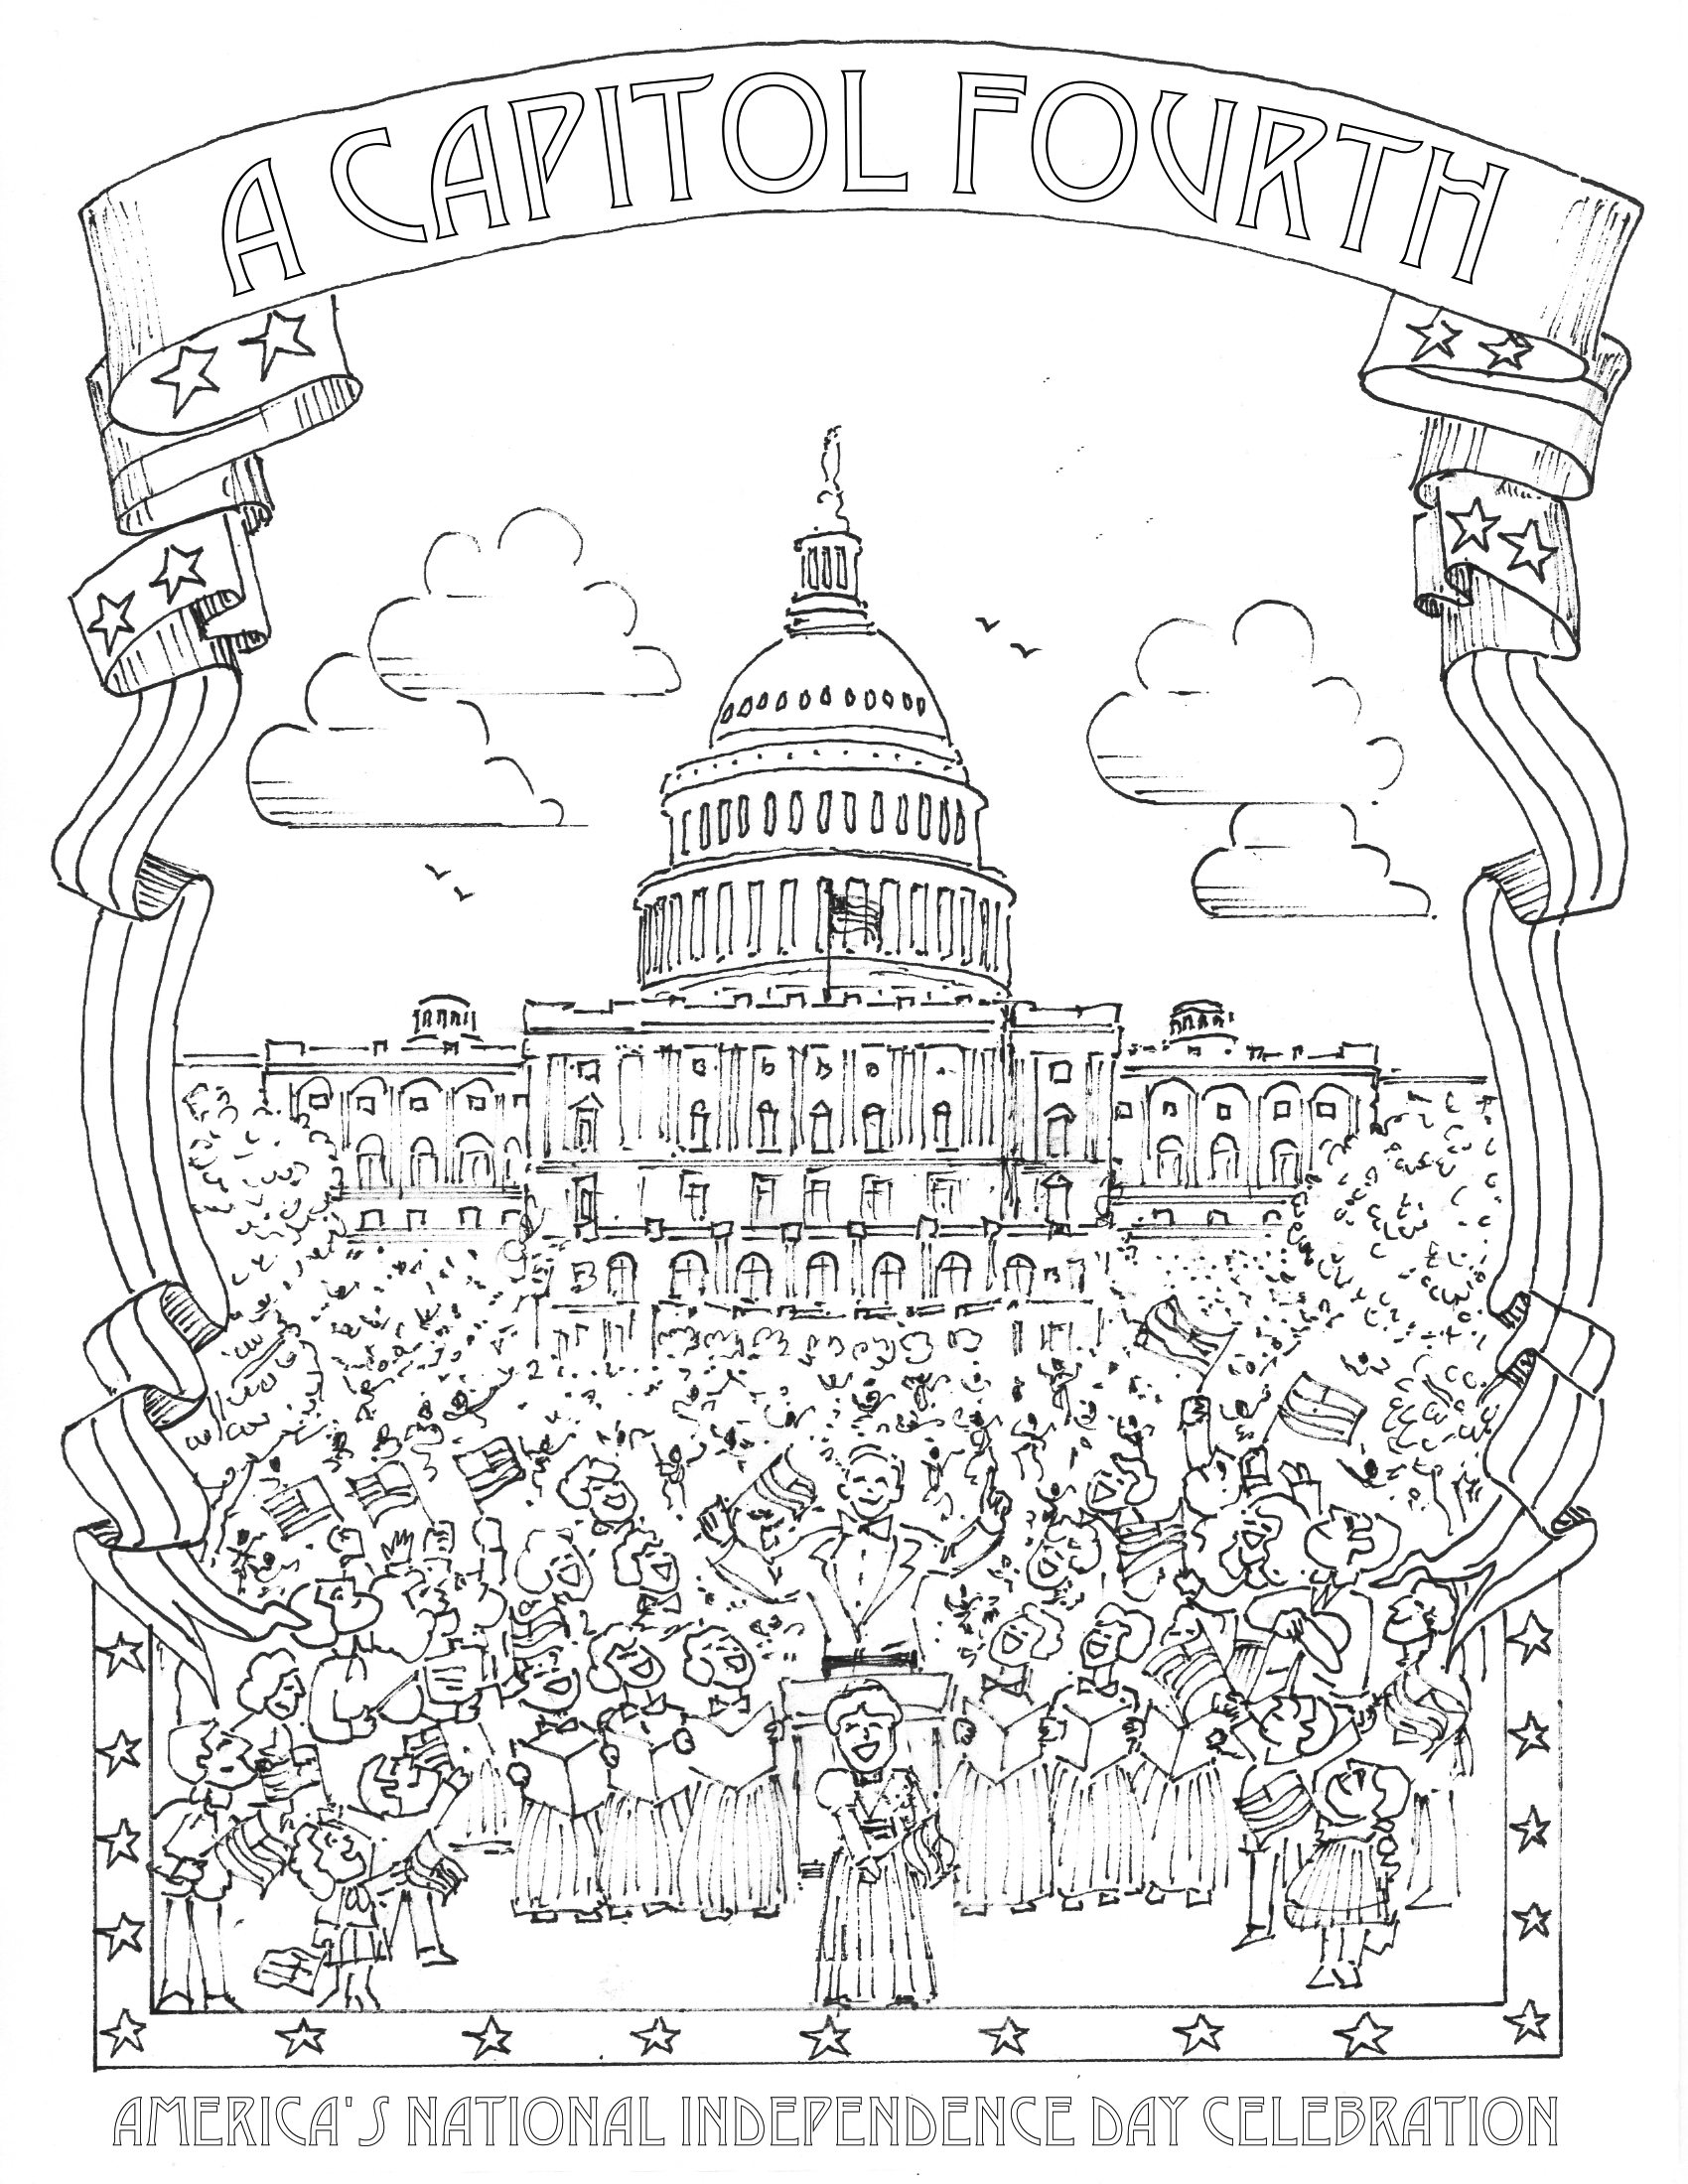 Building Coloring Page Fourth Of July Coloring Pages A Capitol Fourth Pbs